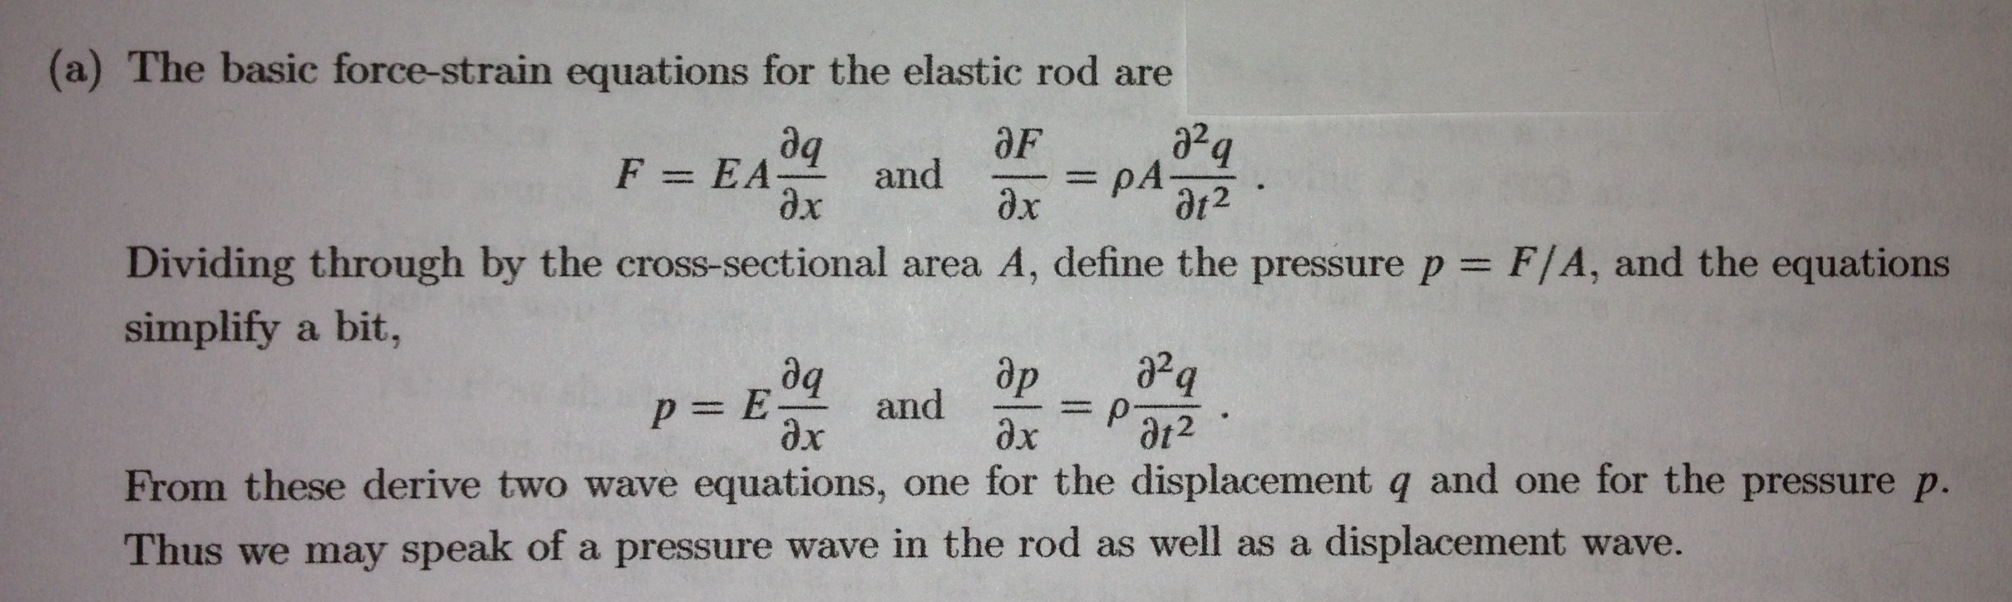 The basic force-strain equations for the elastic r